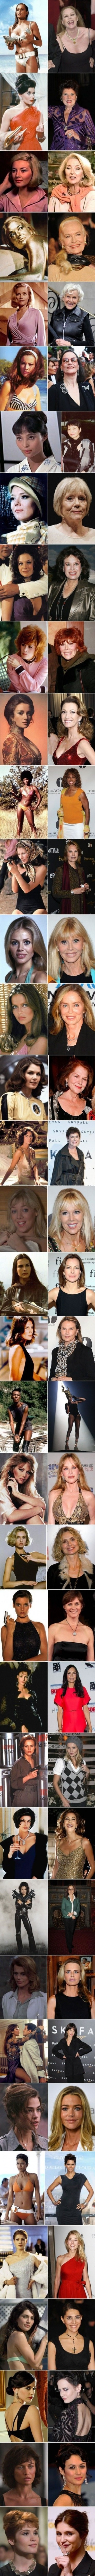 Bond Girls, Then And Now in Pictures. This is awesomeee.